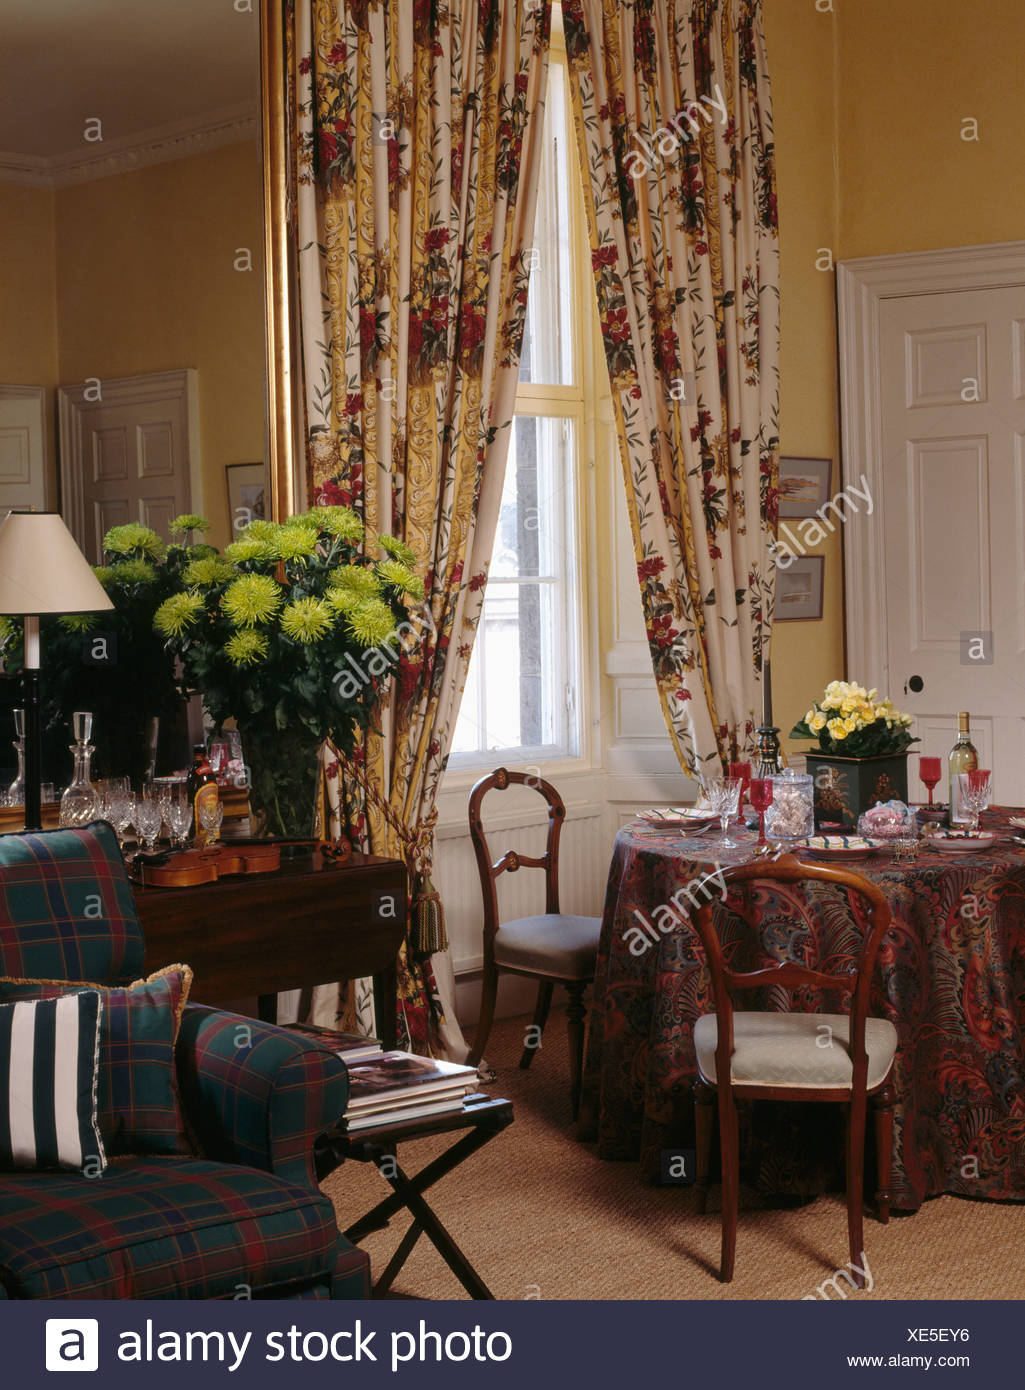 Red cream patterned curtains in dining room with lime green chrysanthemums in vase on table in front of mirror Stock Photo